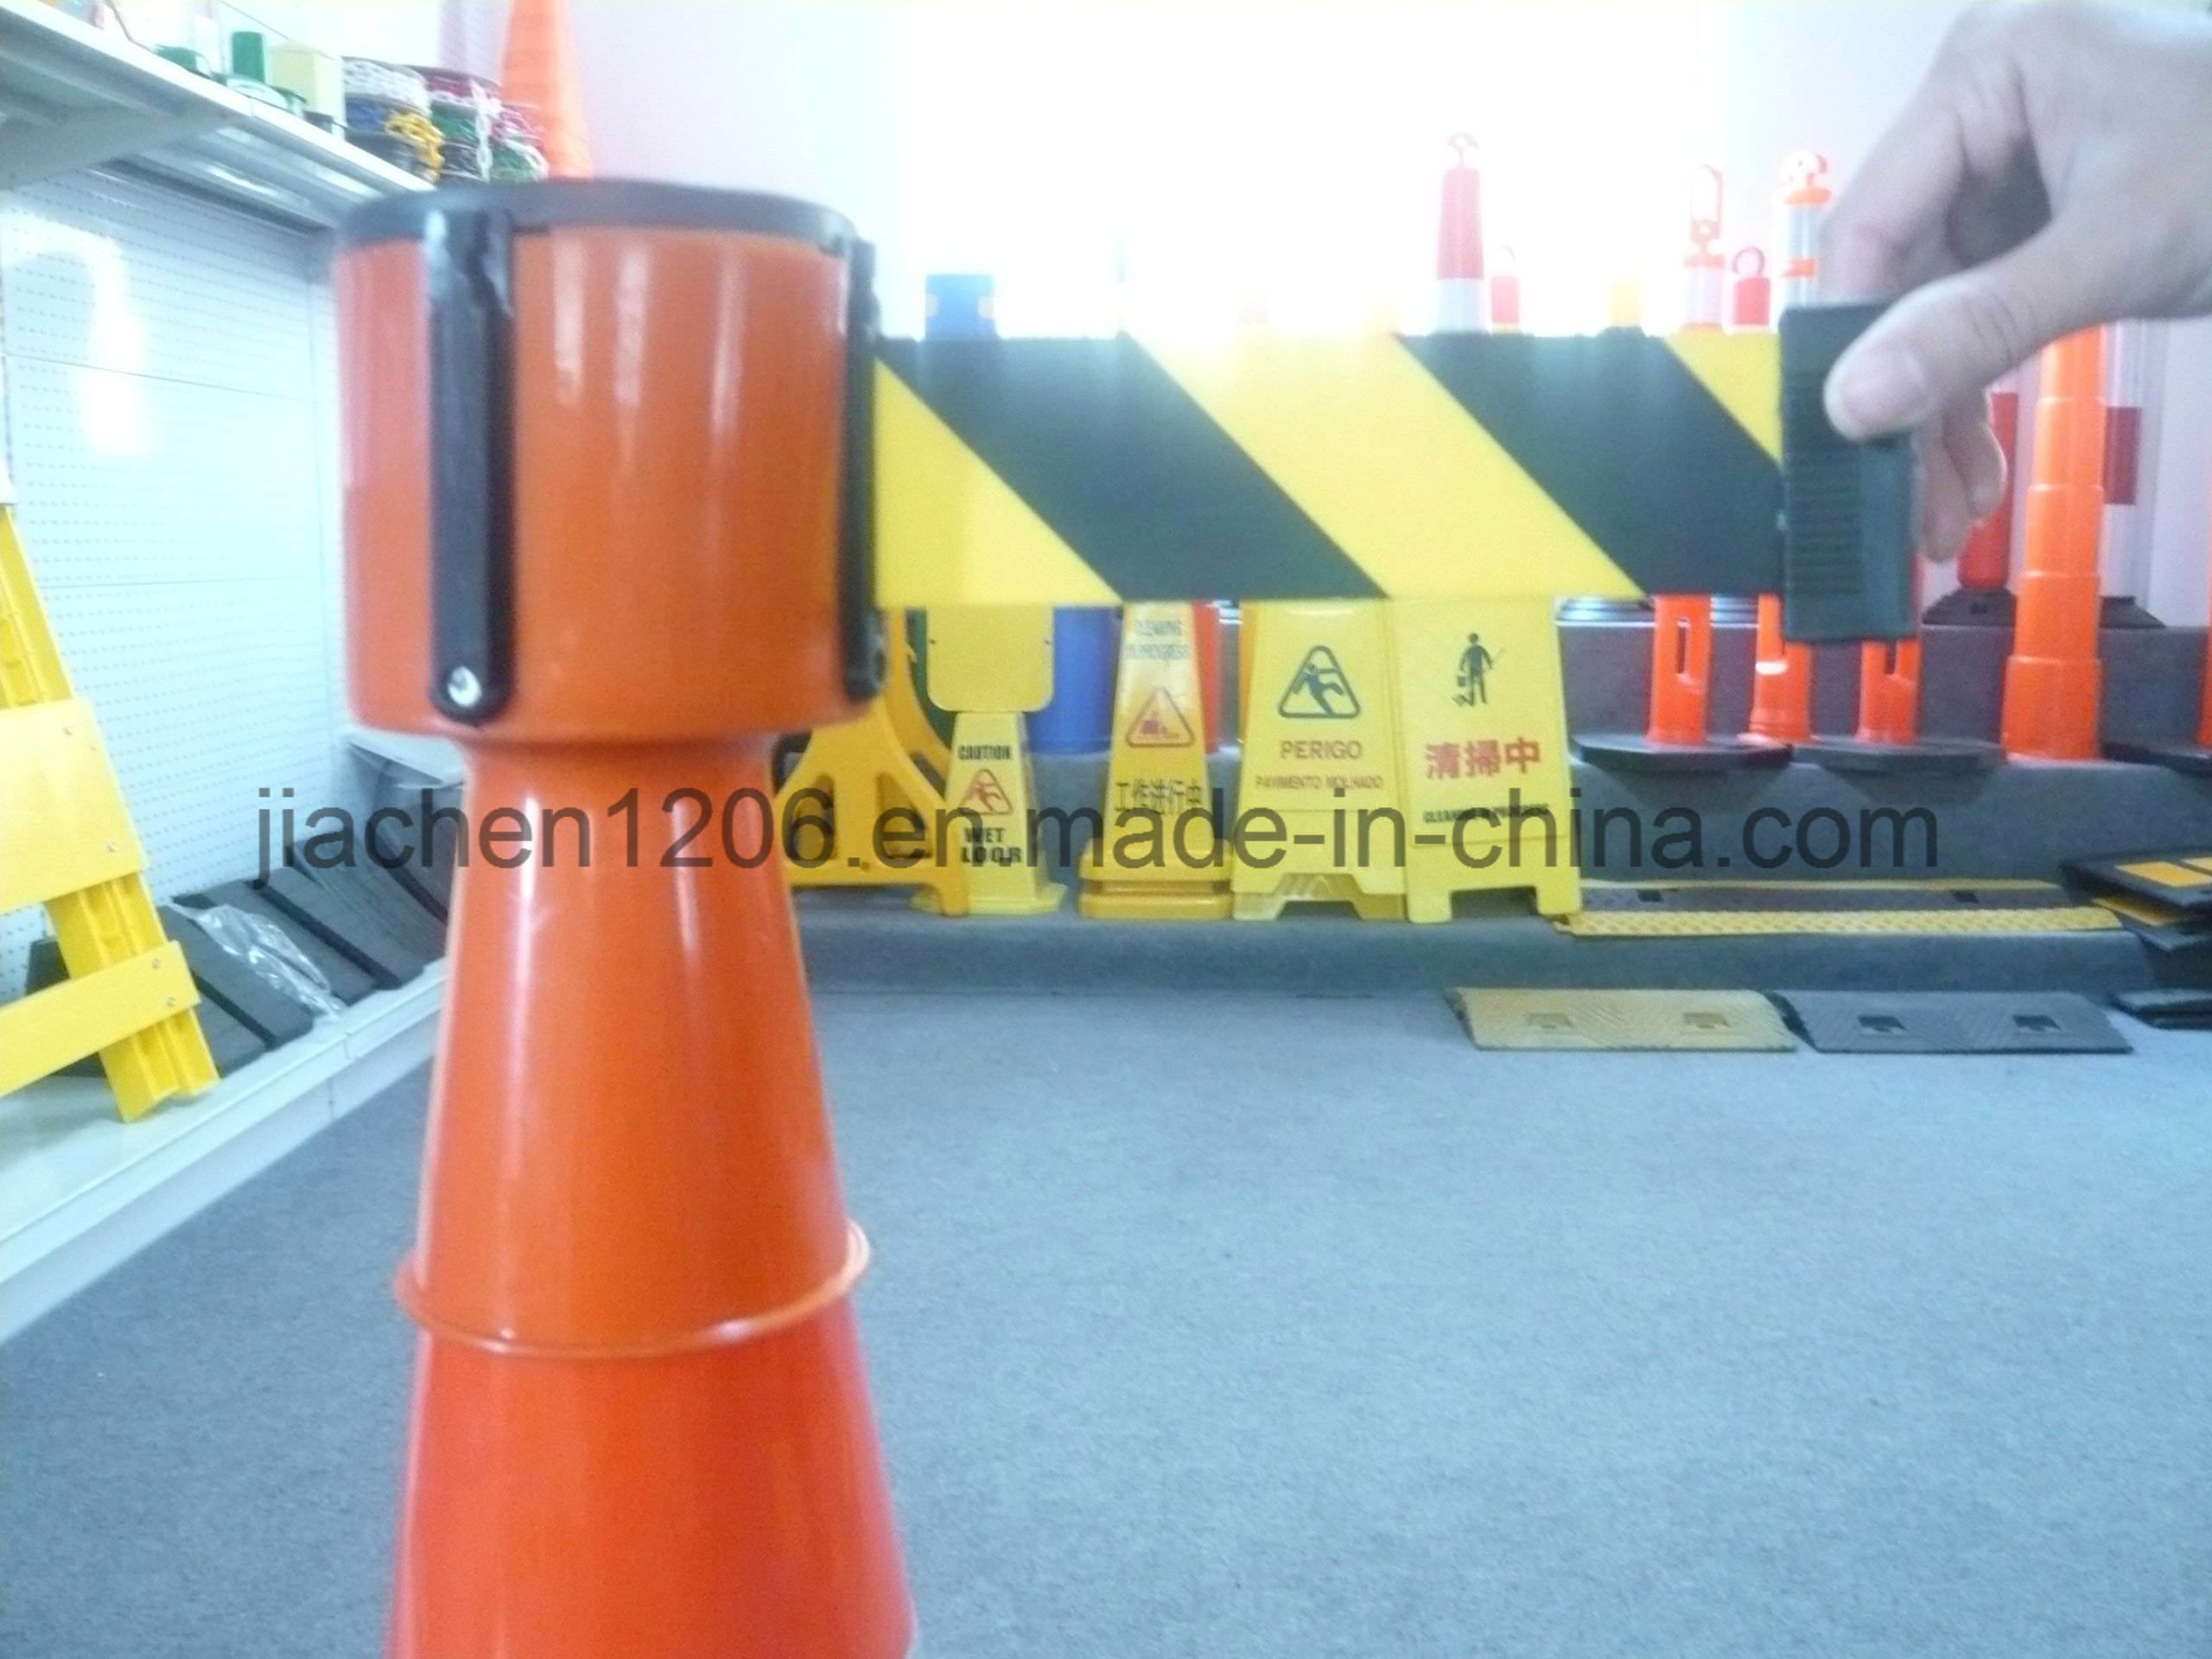 Jiachen High Quality Favorable Price PE Retractable Barrier